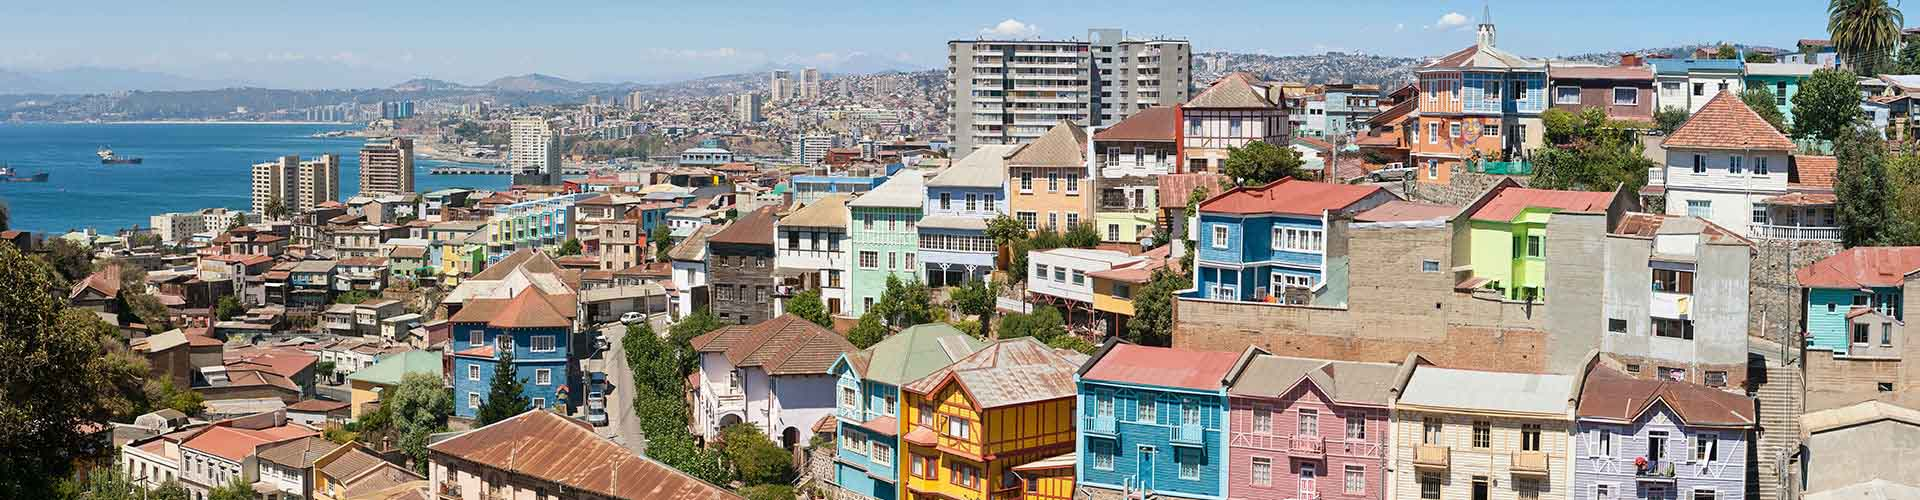 Valparaiso – Hostels in Valparaiso. Maps for Valparaiso, Photos and Reviews for each hostel in Valparaiso.